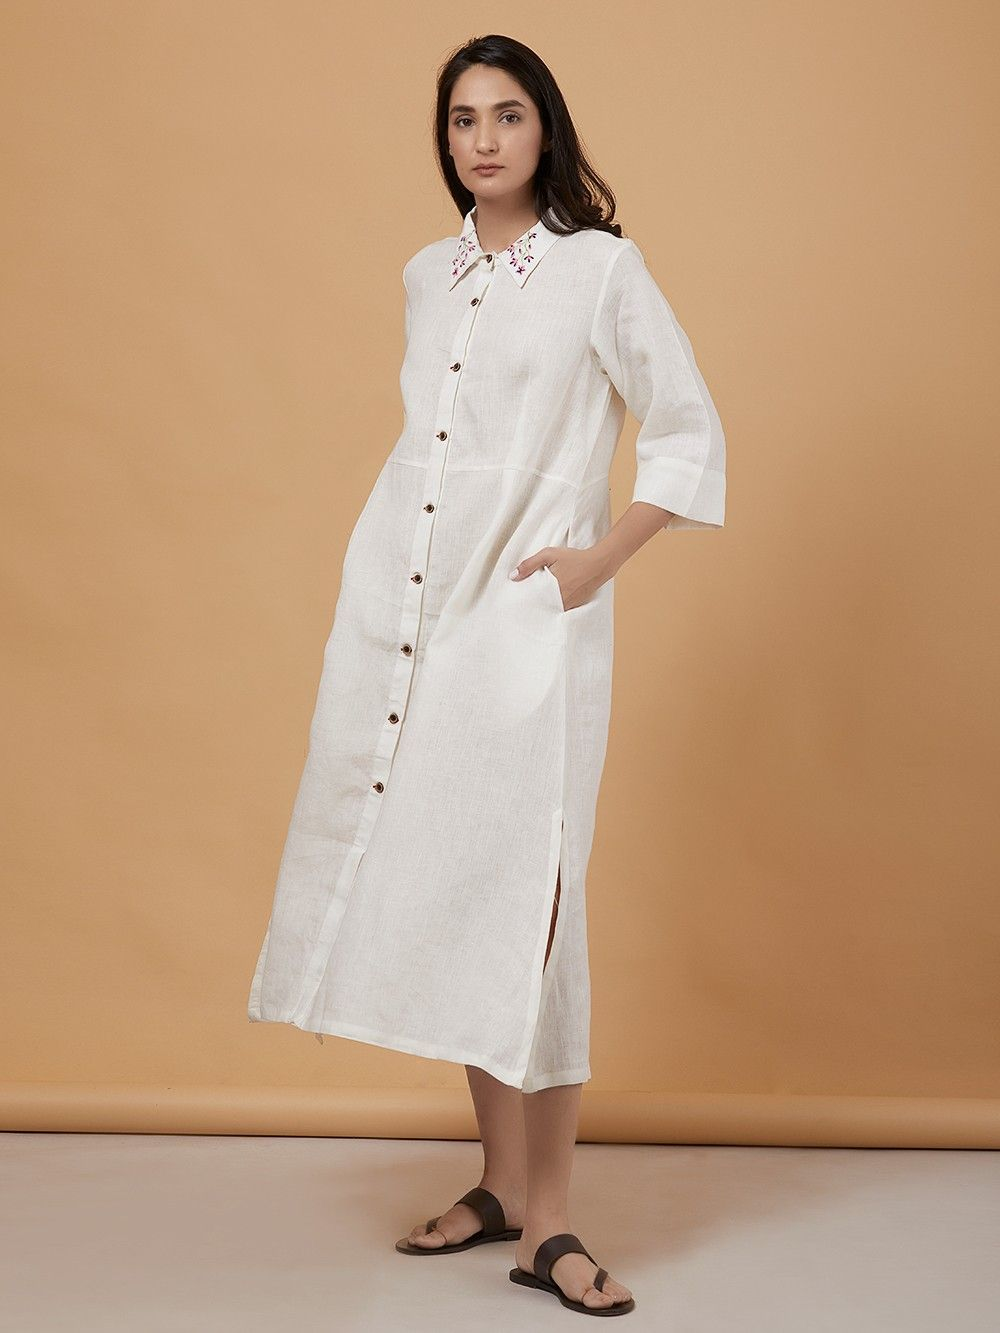 white linen shirt how to wear